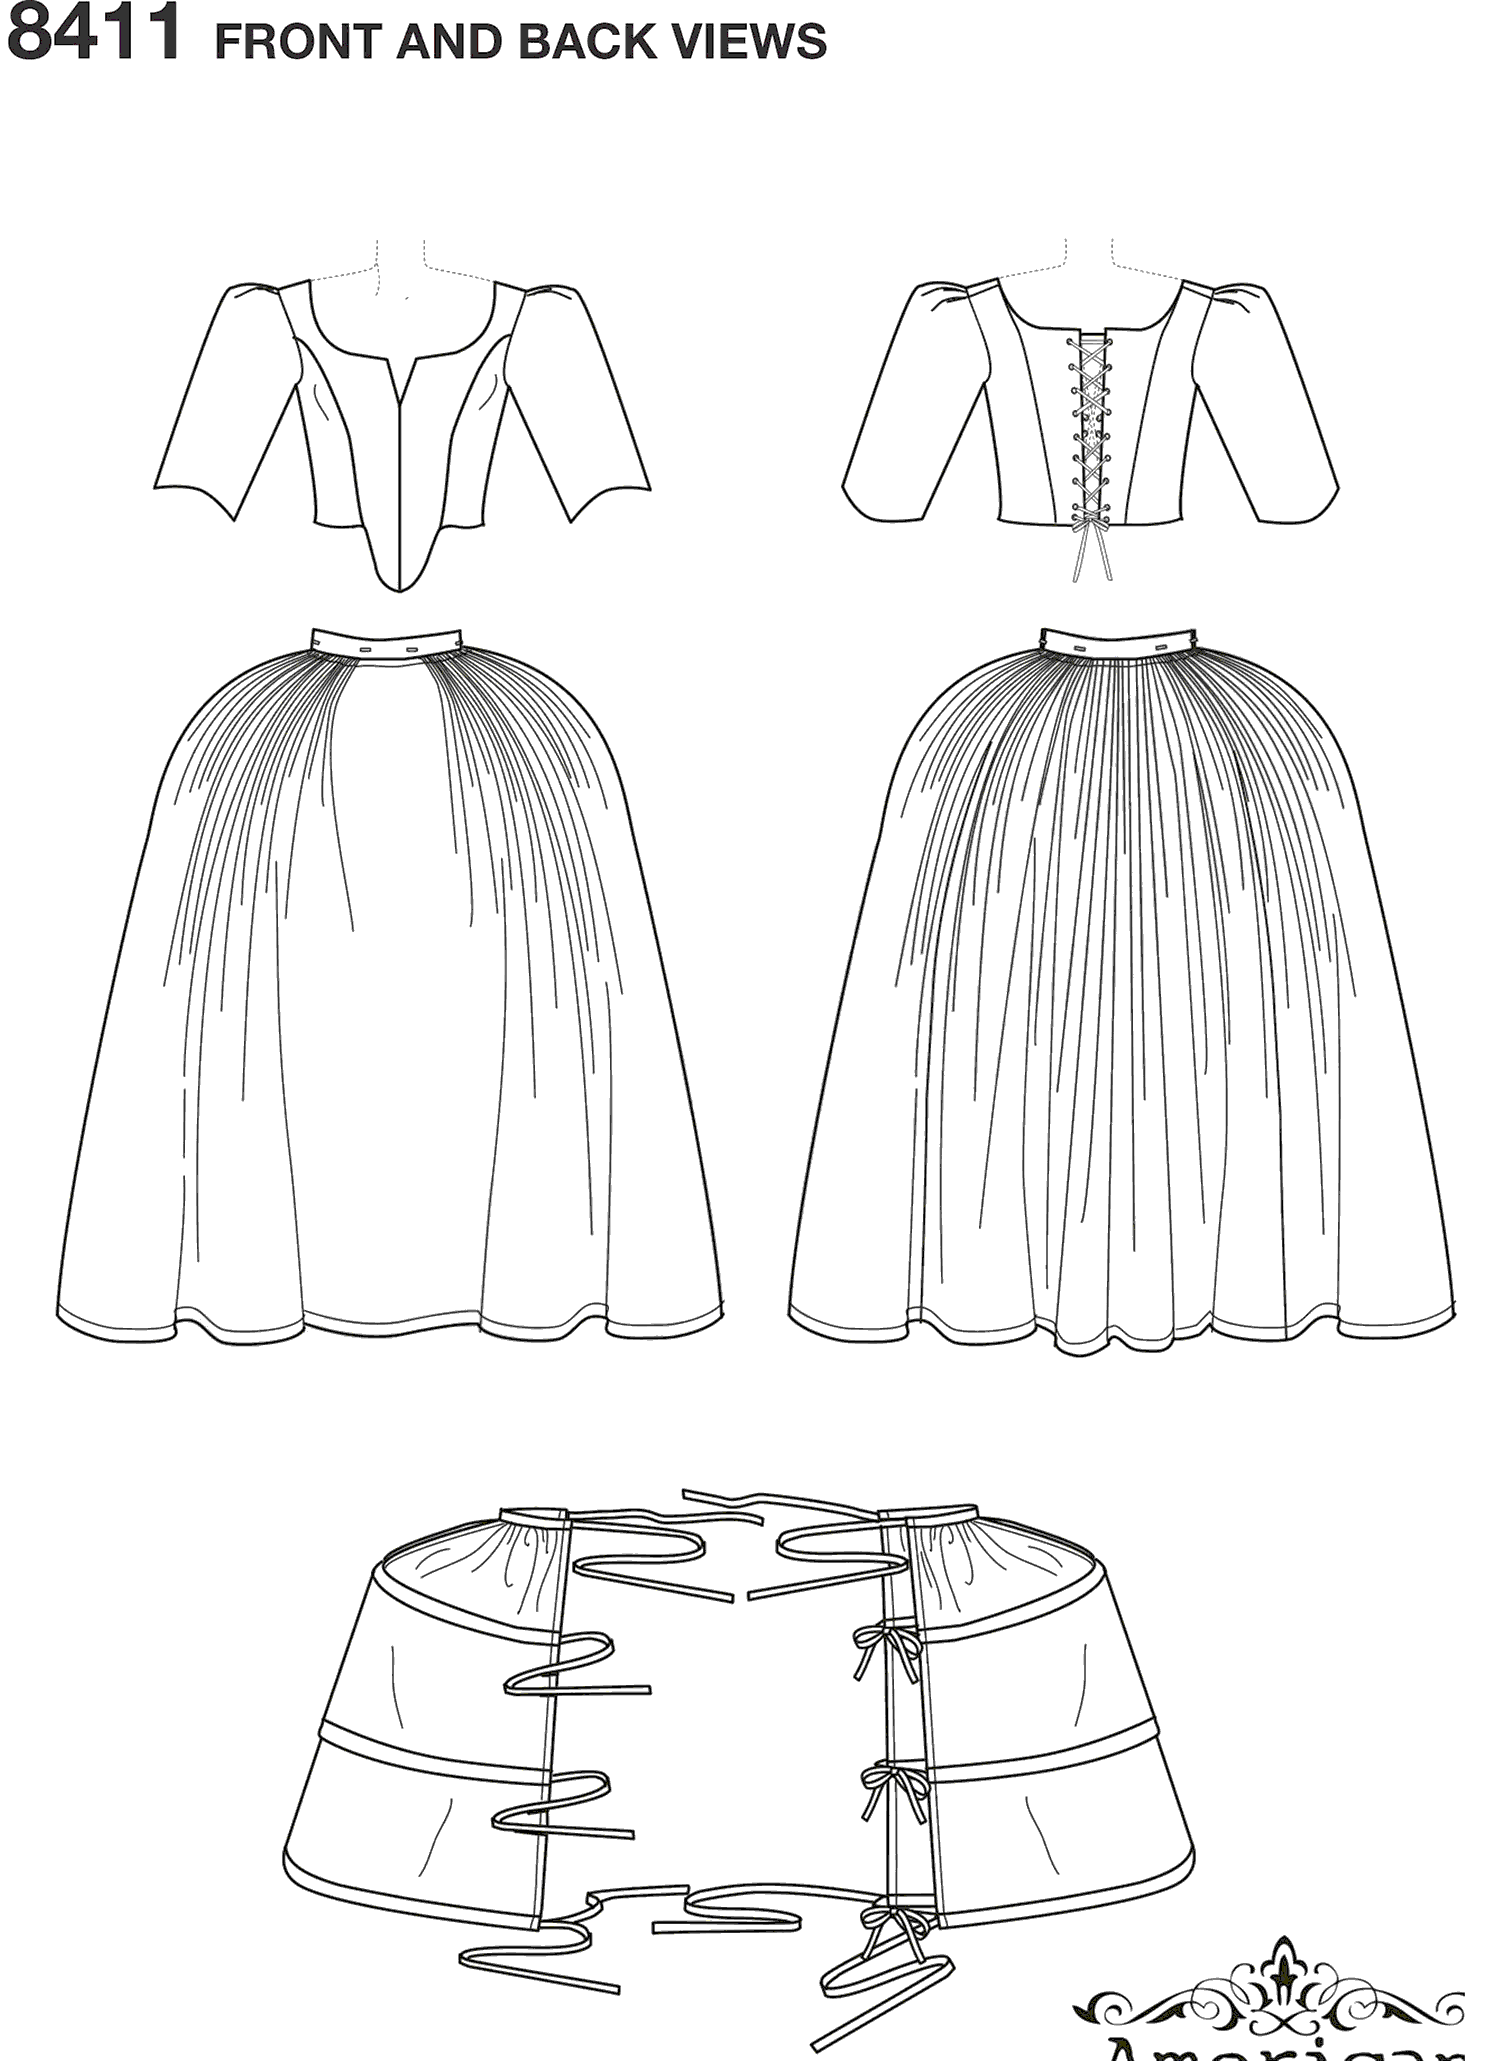 Simplicity Pattern 8411 Womens 18th Century Costume Line Art From Patternsandplains.com